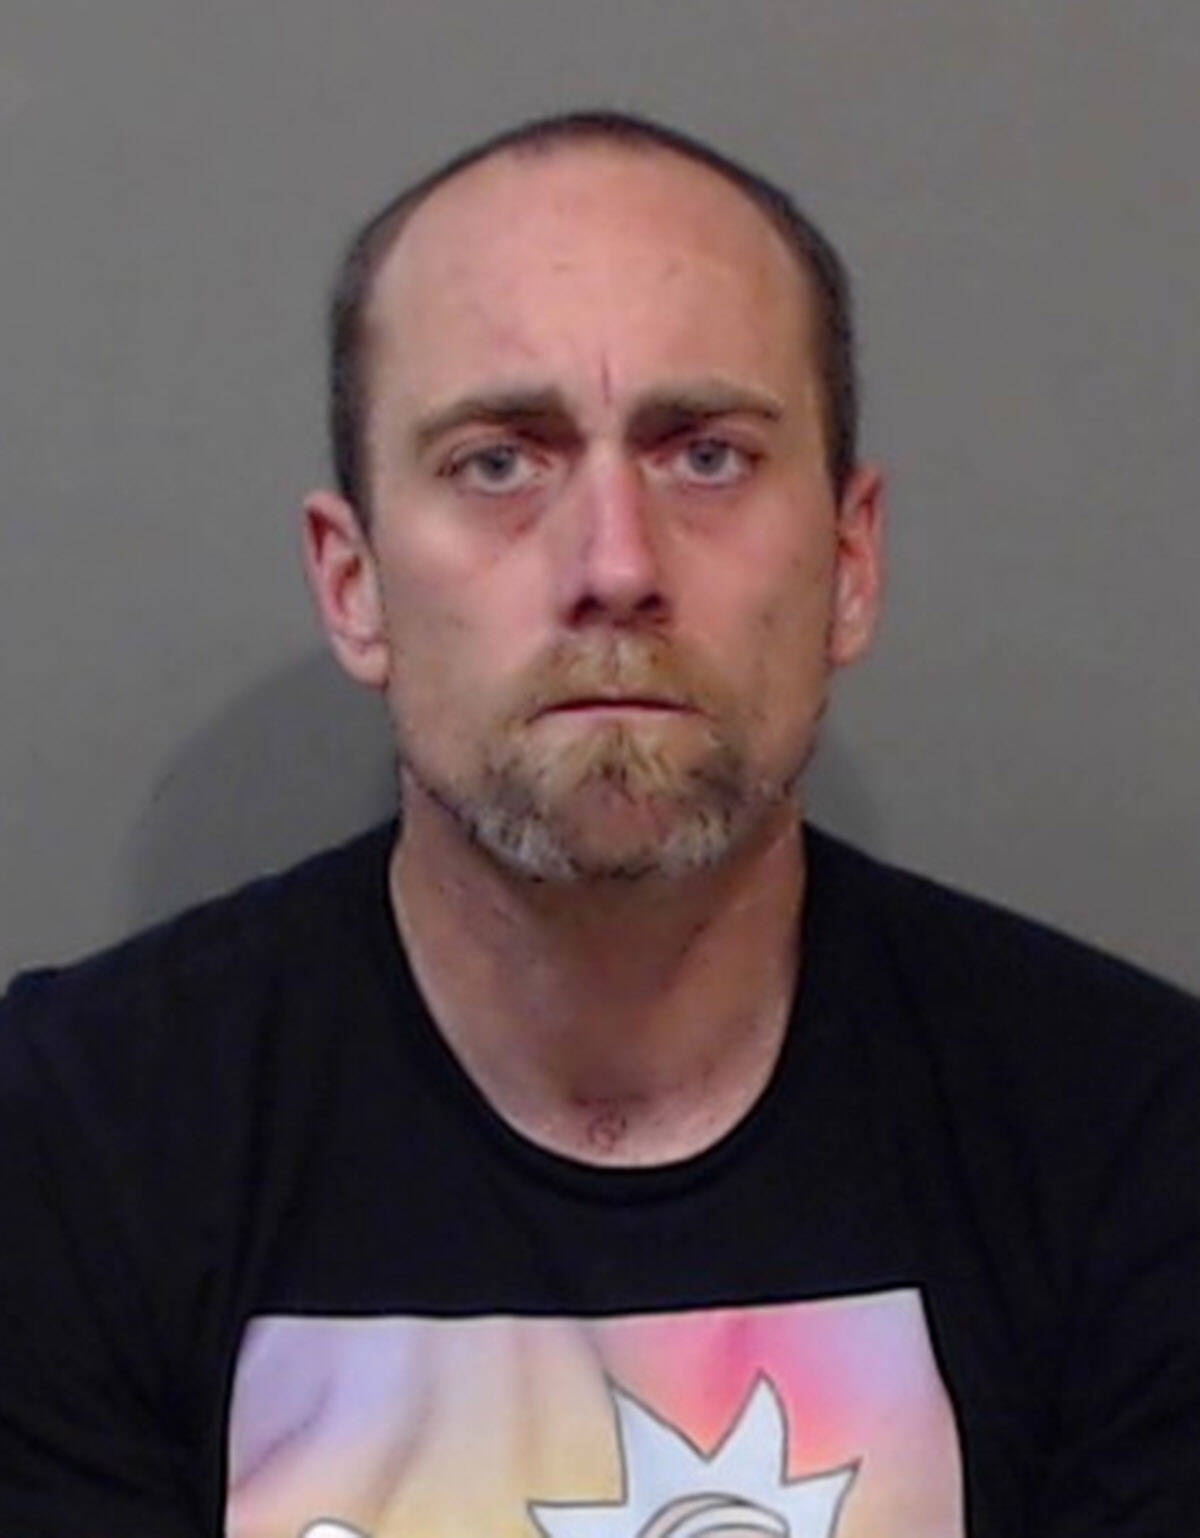 """Name: MCGONIGAL, Robert Age: 36 Height: 5'11"""" ft Weight: 181lbs Hair: Brown Eyes: Blue Wanted: Assault with a Weapon and Willfully Cause Pain to Animal. Warrant in effect: August 31, 2021 Parole Jurisdiction: Chilliwack, BC"""